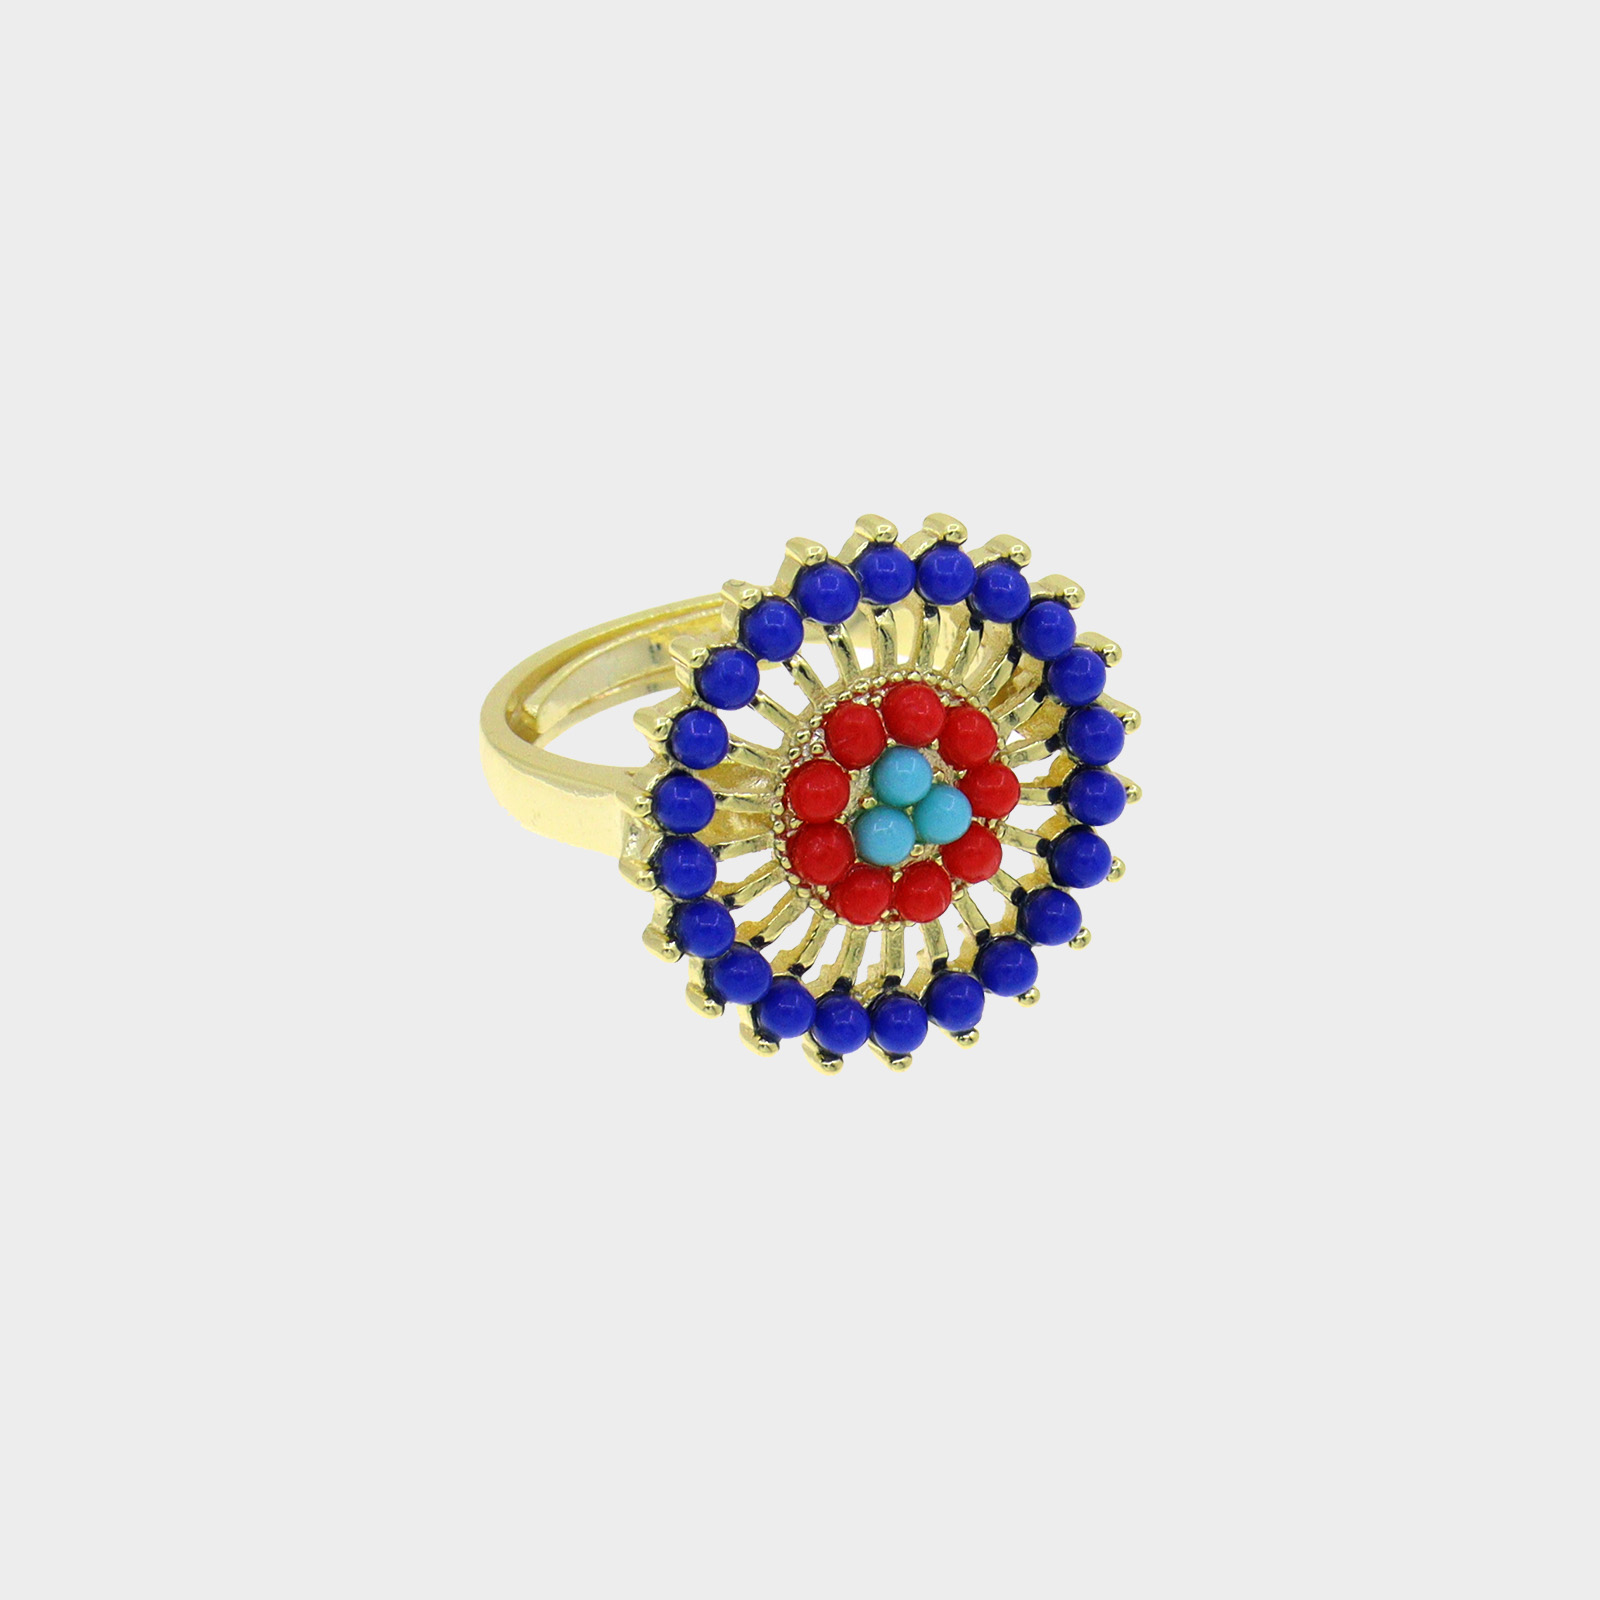 The Ring Amazon Flower Blue